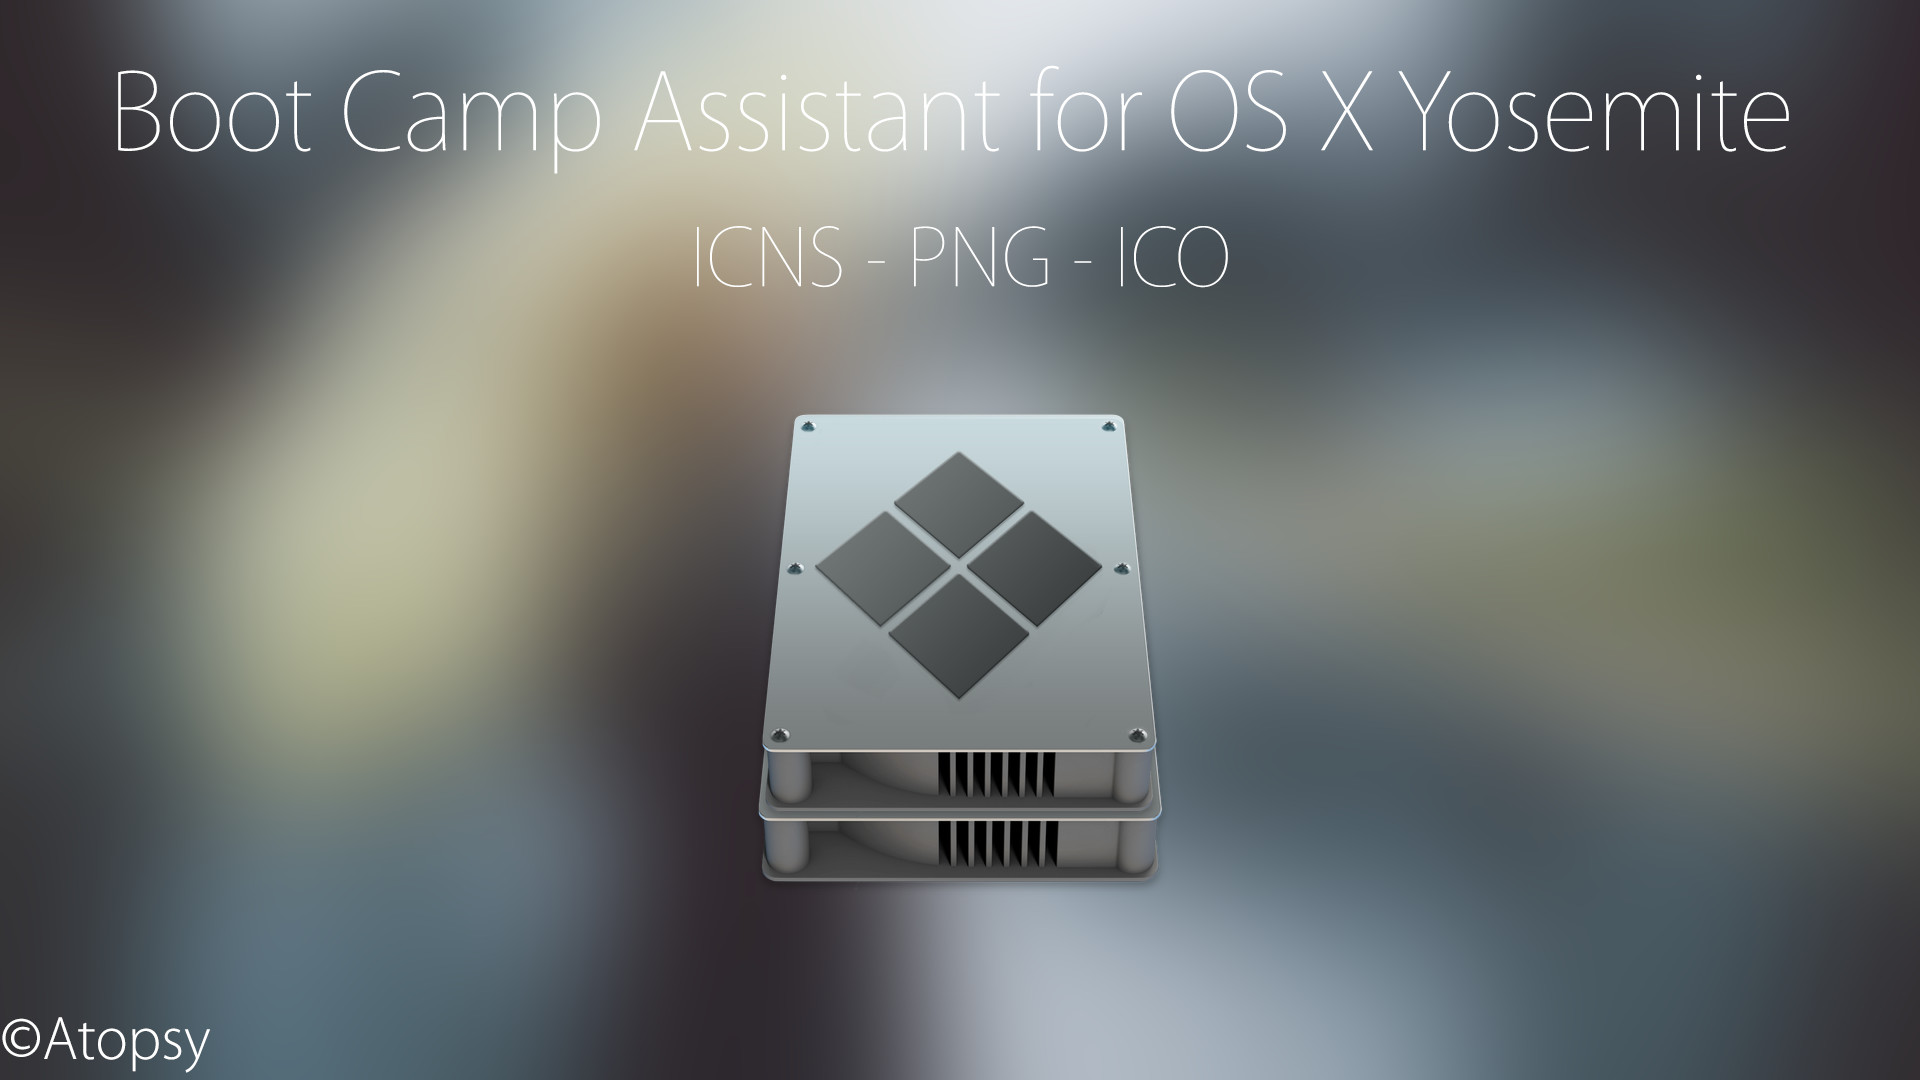 … Boot Camp Assistant for OS X Yosemite (Re-Upload) by Atopsy